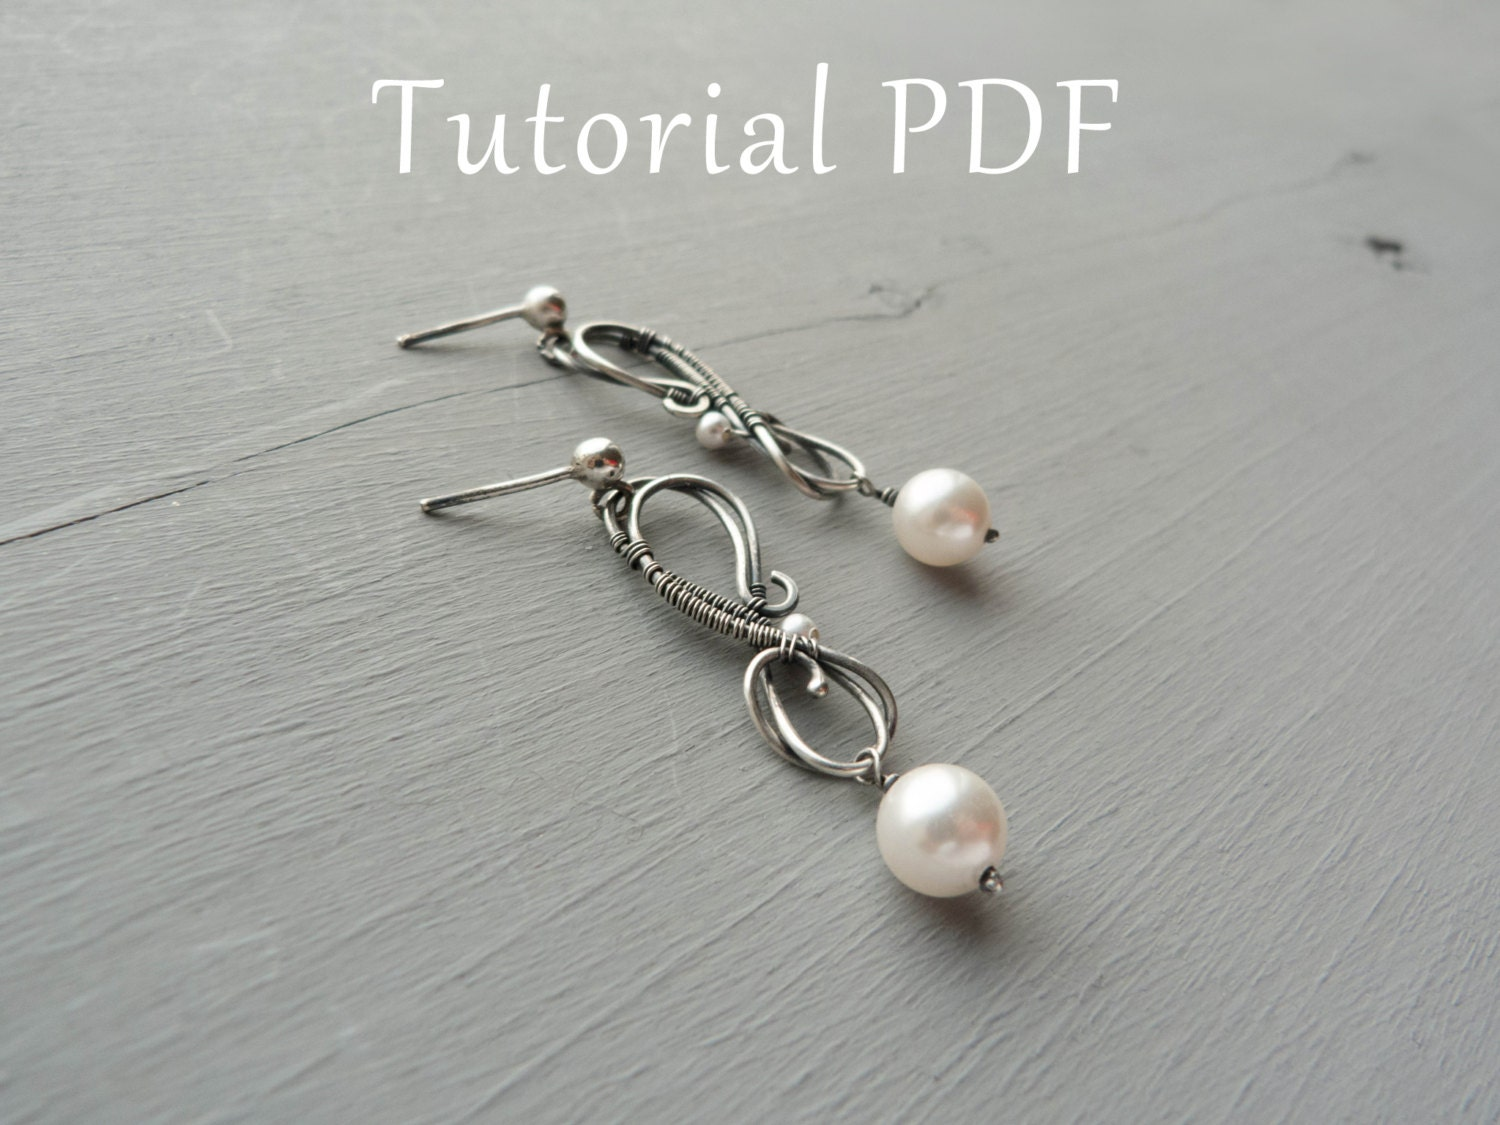 Jewelry tutorial diy project sterling silver earrings tutorial jewelry tutorial diy project sterling silver earrings tutorial tutorial wire wrapped earrings baditri Images